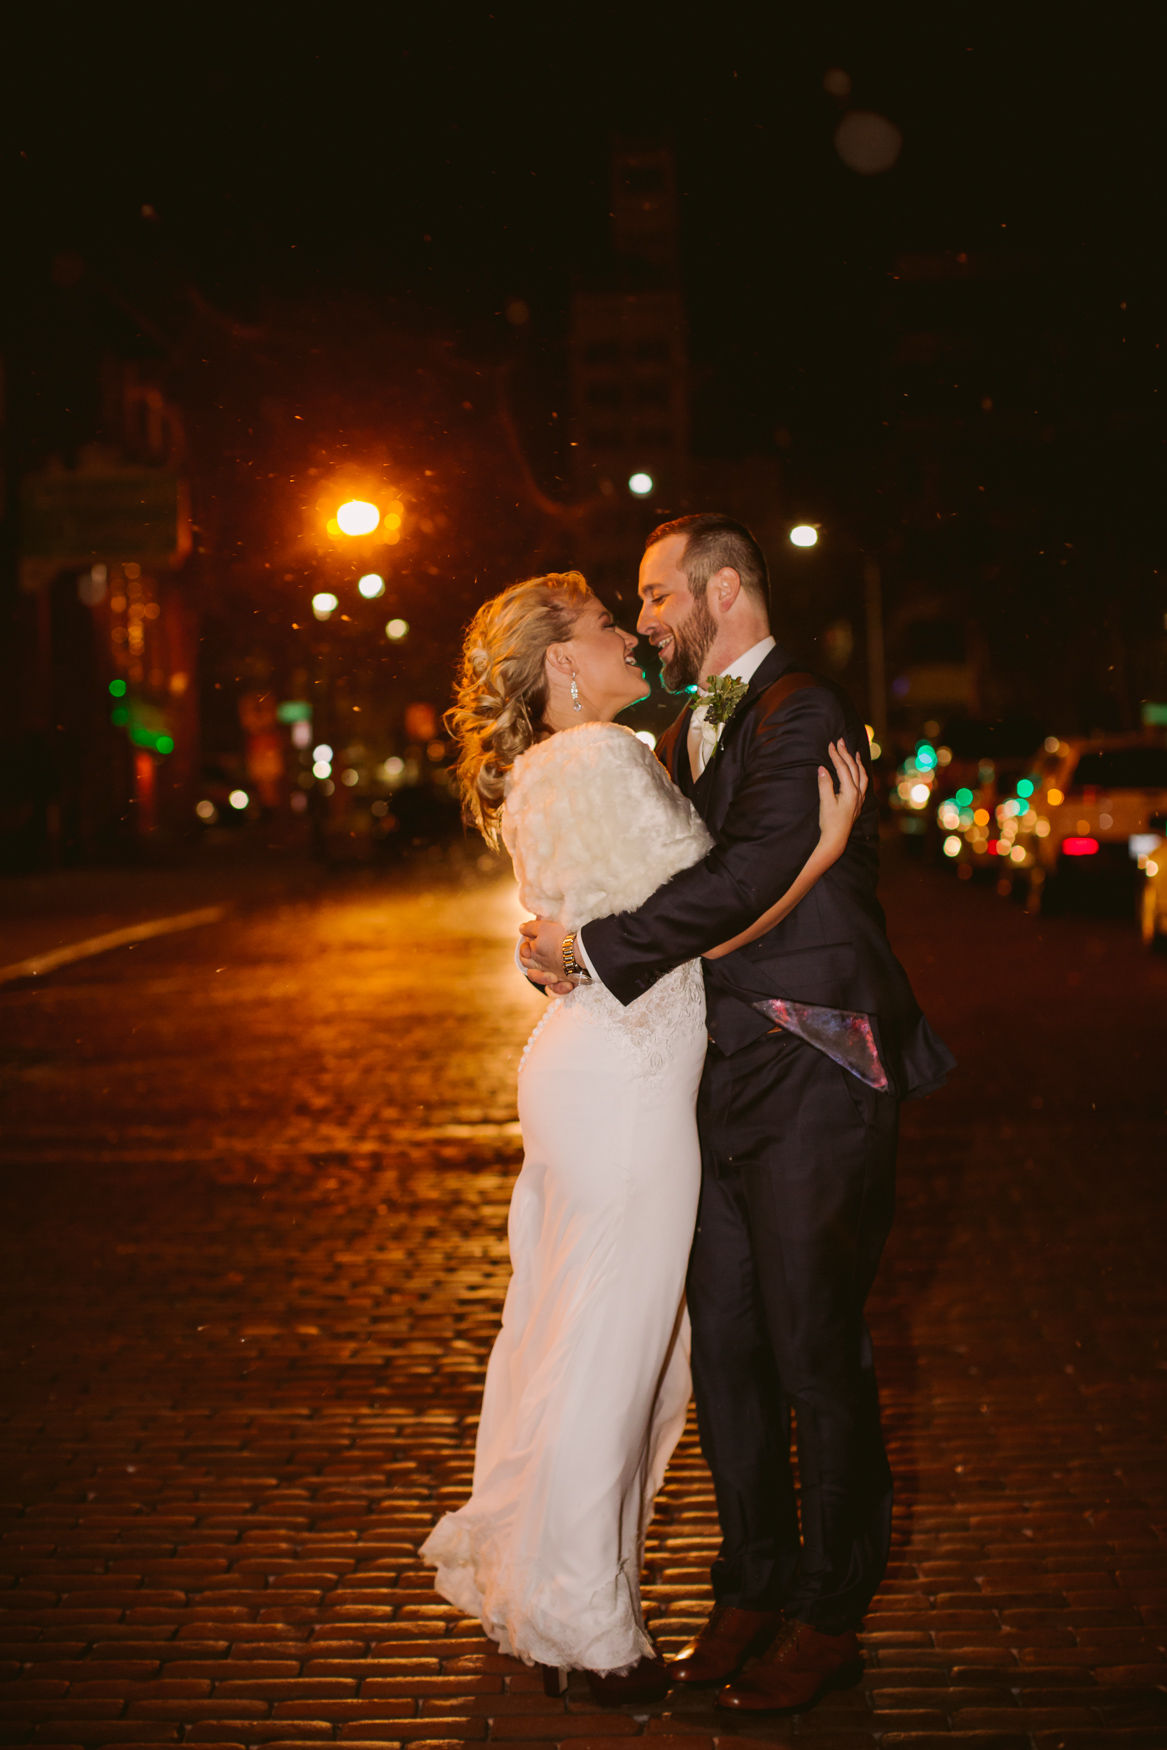 Wedding Downtown Couples Portrait in the Snow Asheville NC Wedding Photography